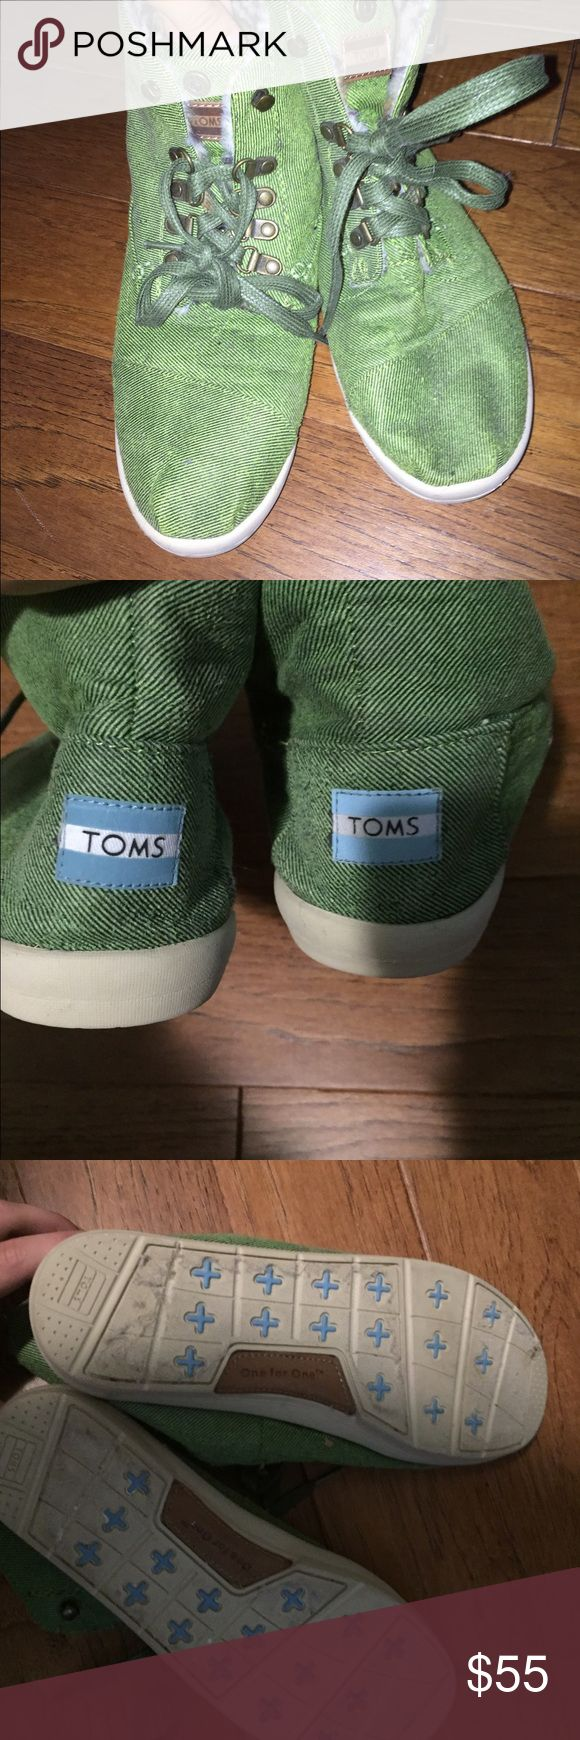 Toms Green High-tops Never worn, green Toms high-tops. Soft, leopard print material on inside, great quality shoe, good condition (never worn). TOMS Shoes Sneakers